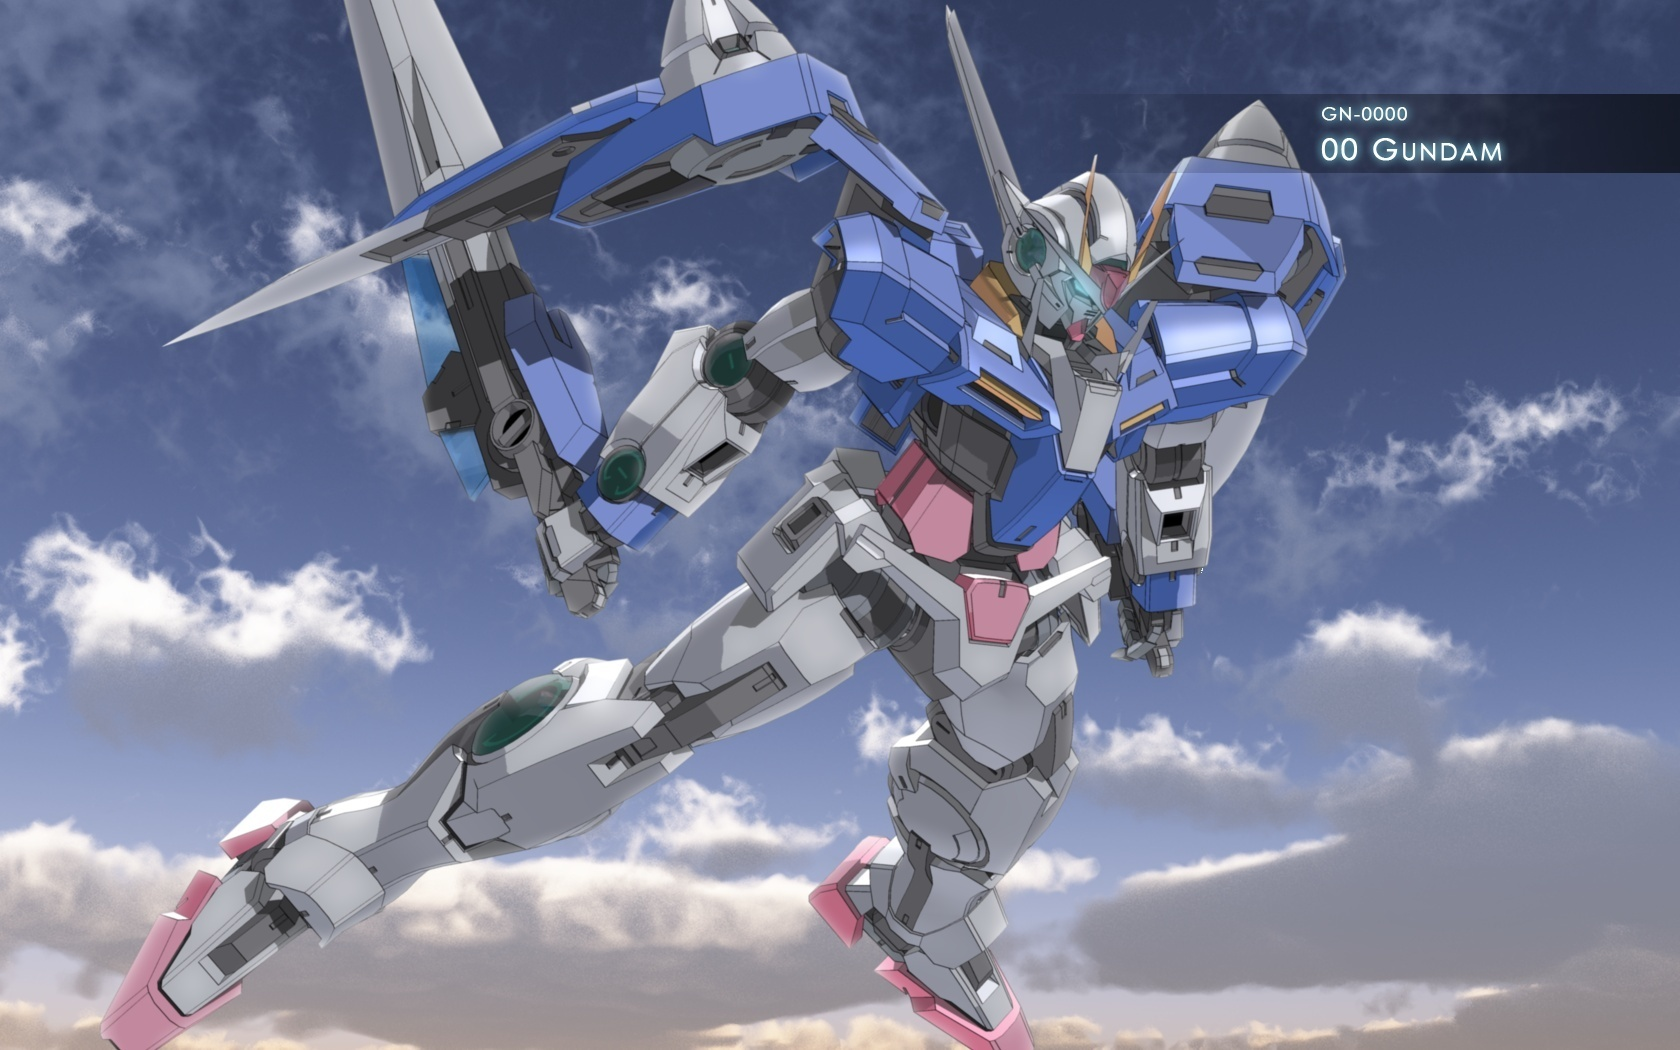 gundam 00 the place where sky and earth meet